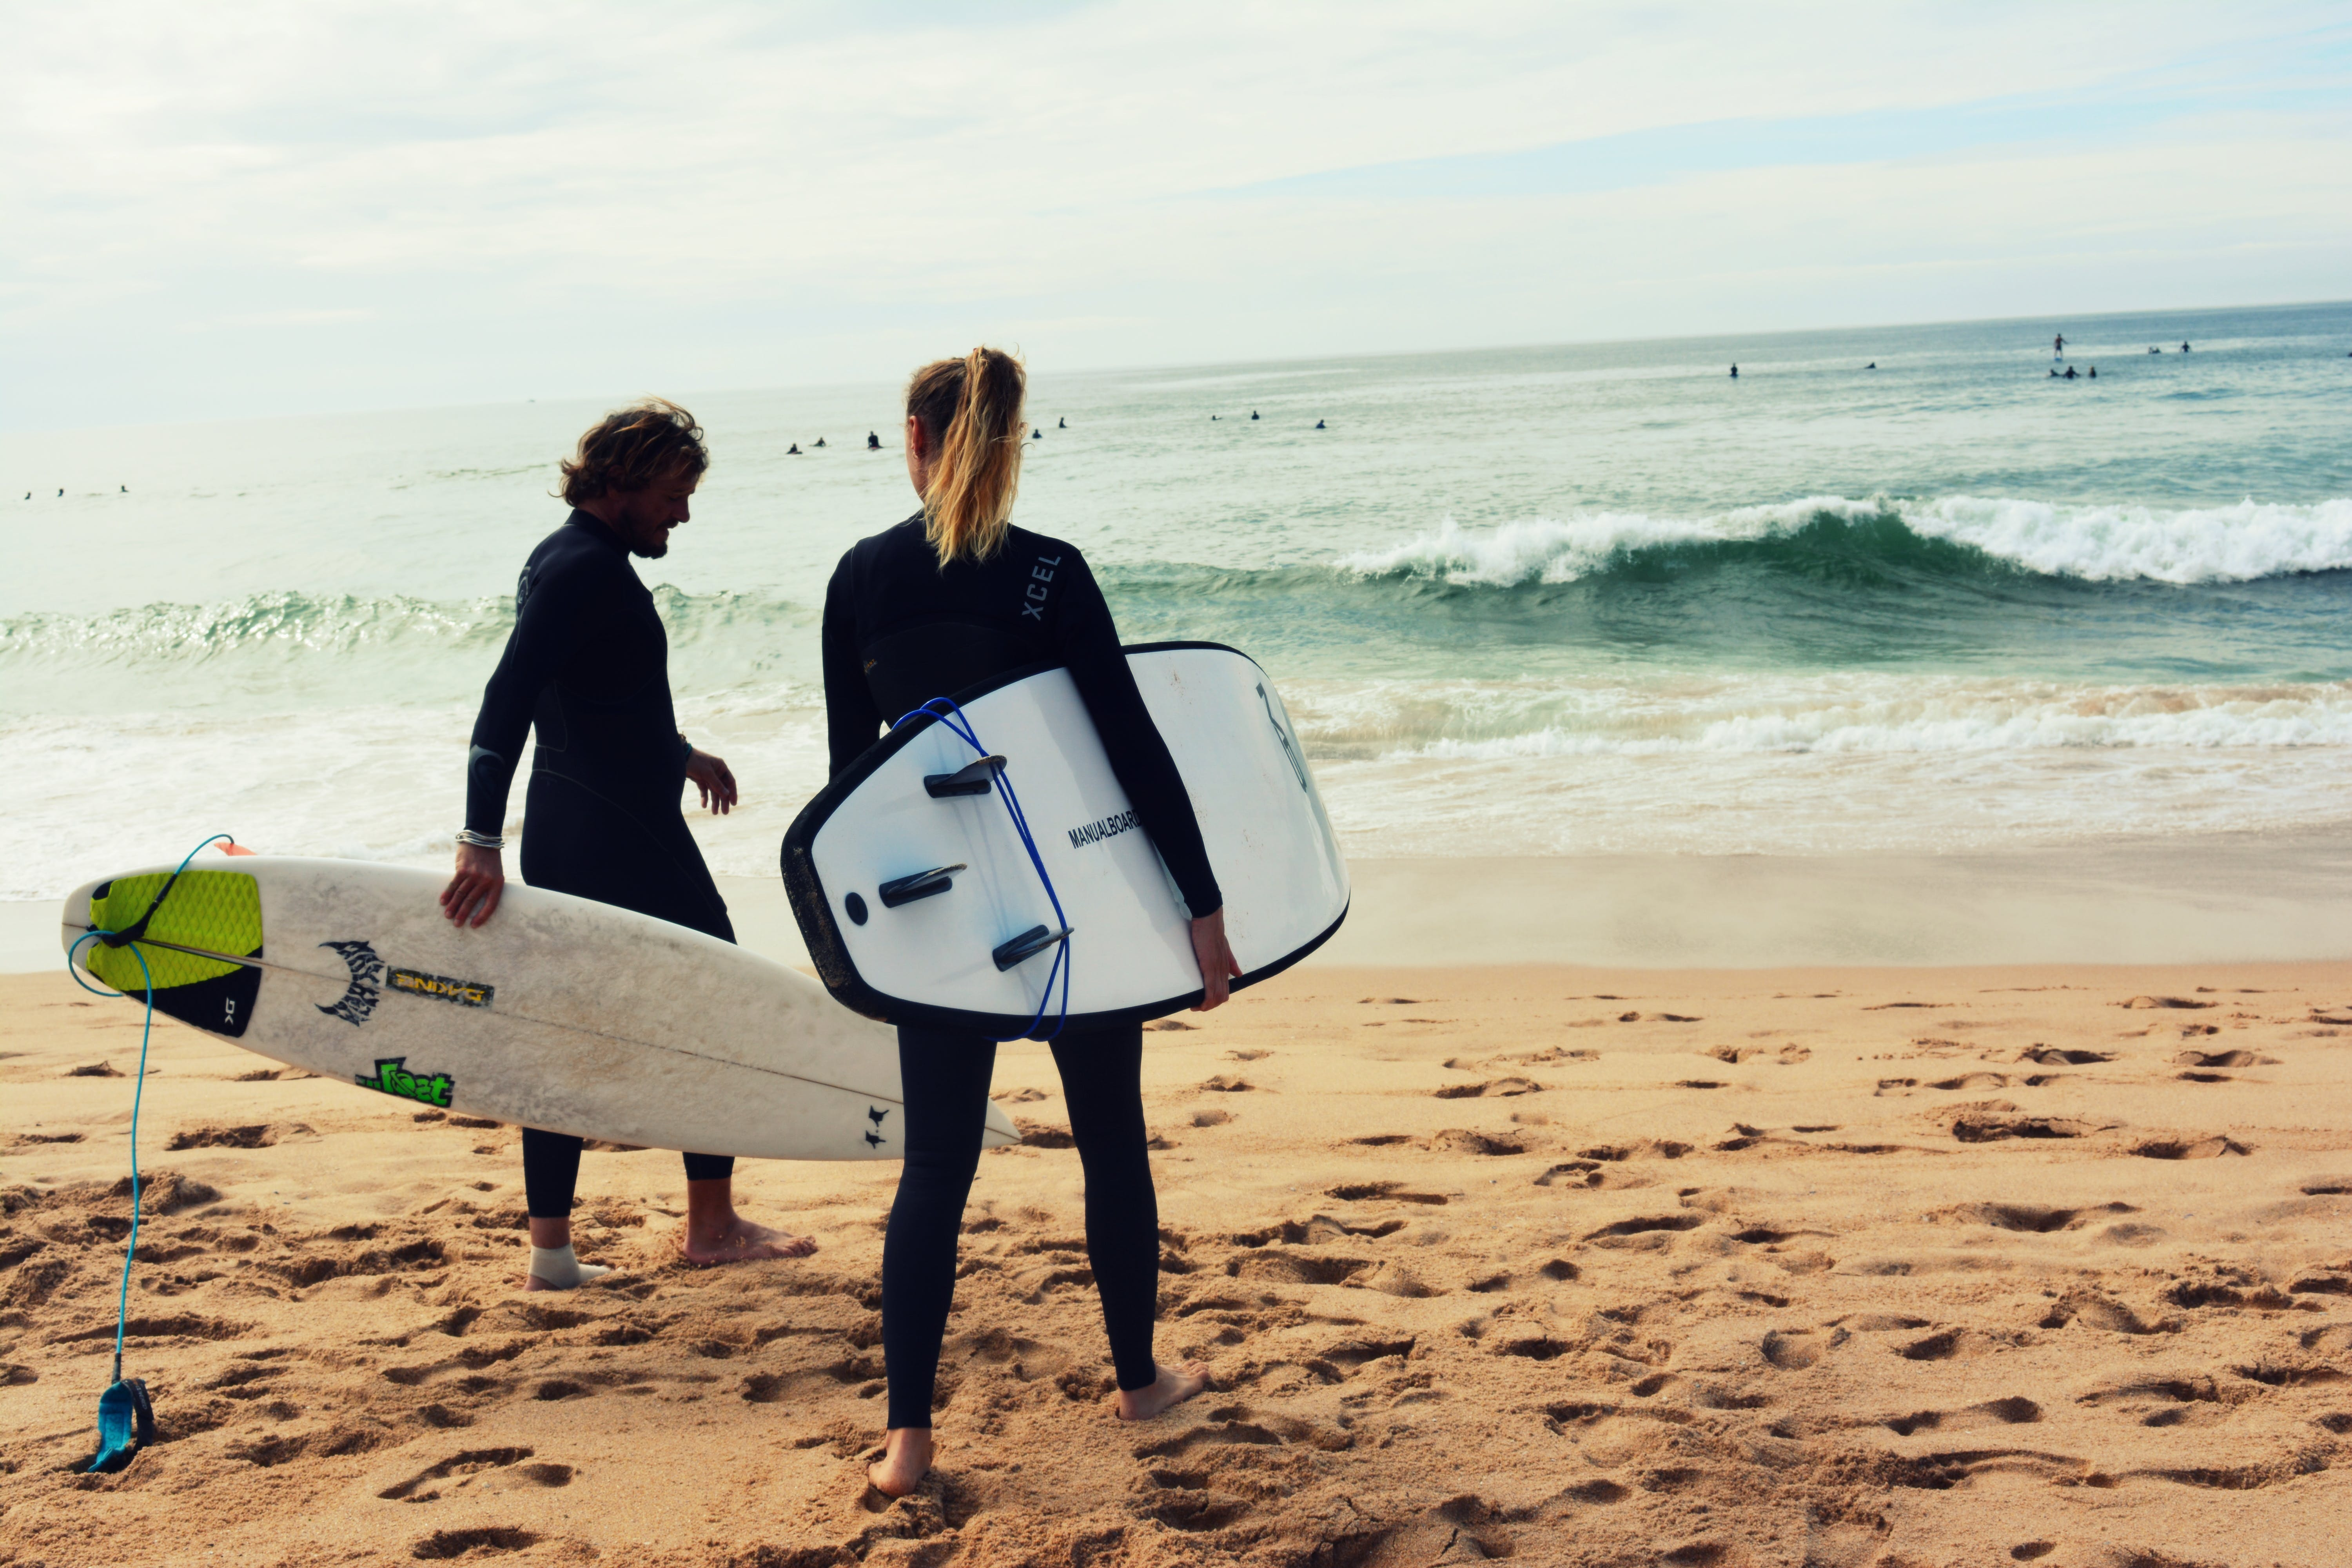 Man and Woman Holding Surfboards on Seashore